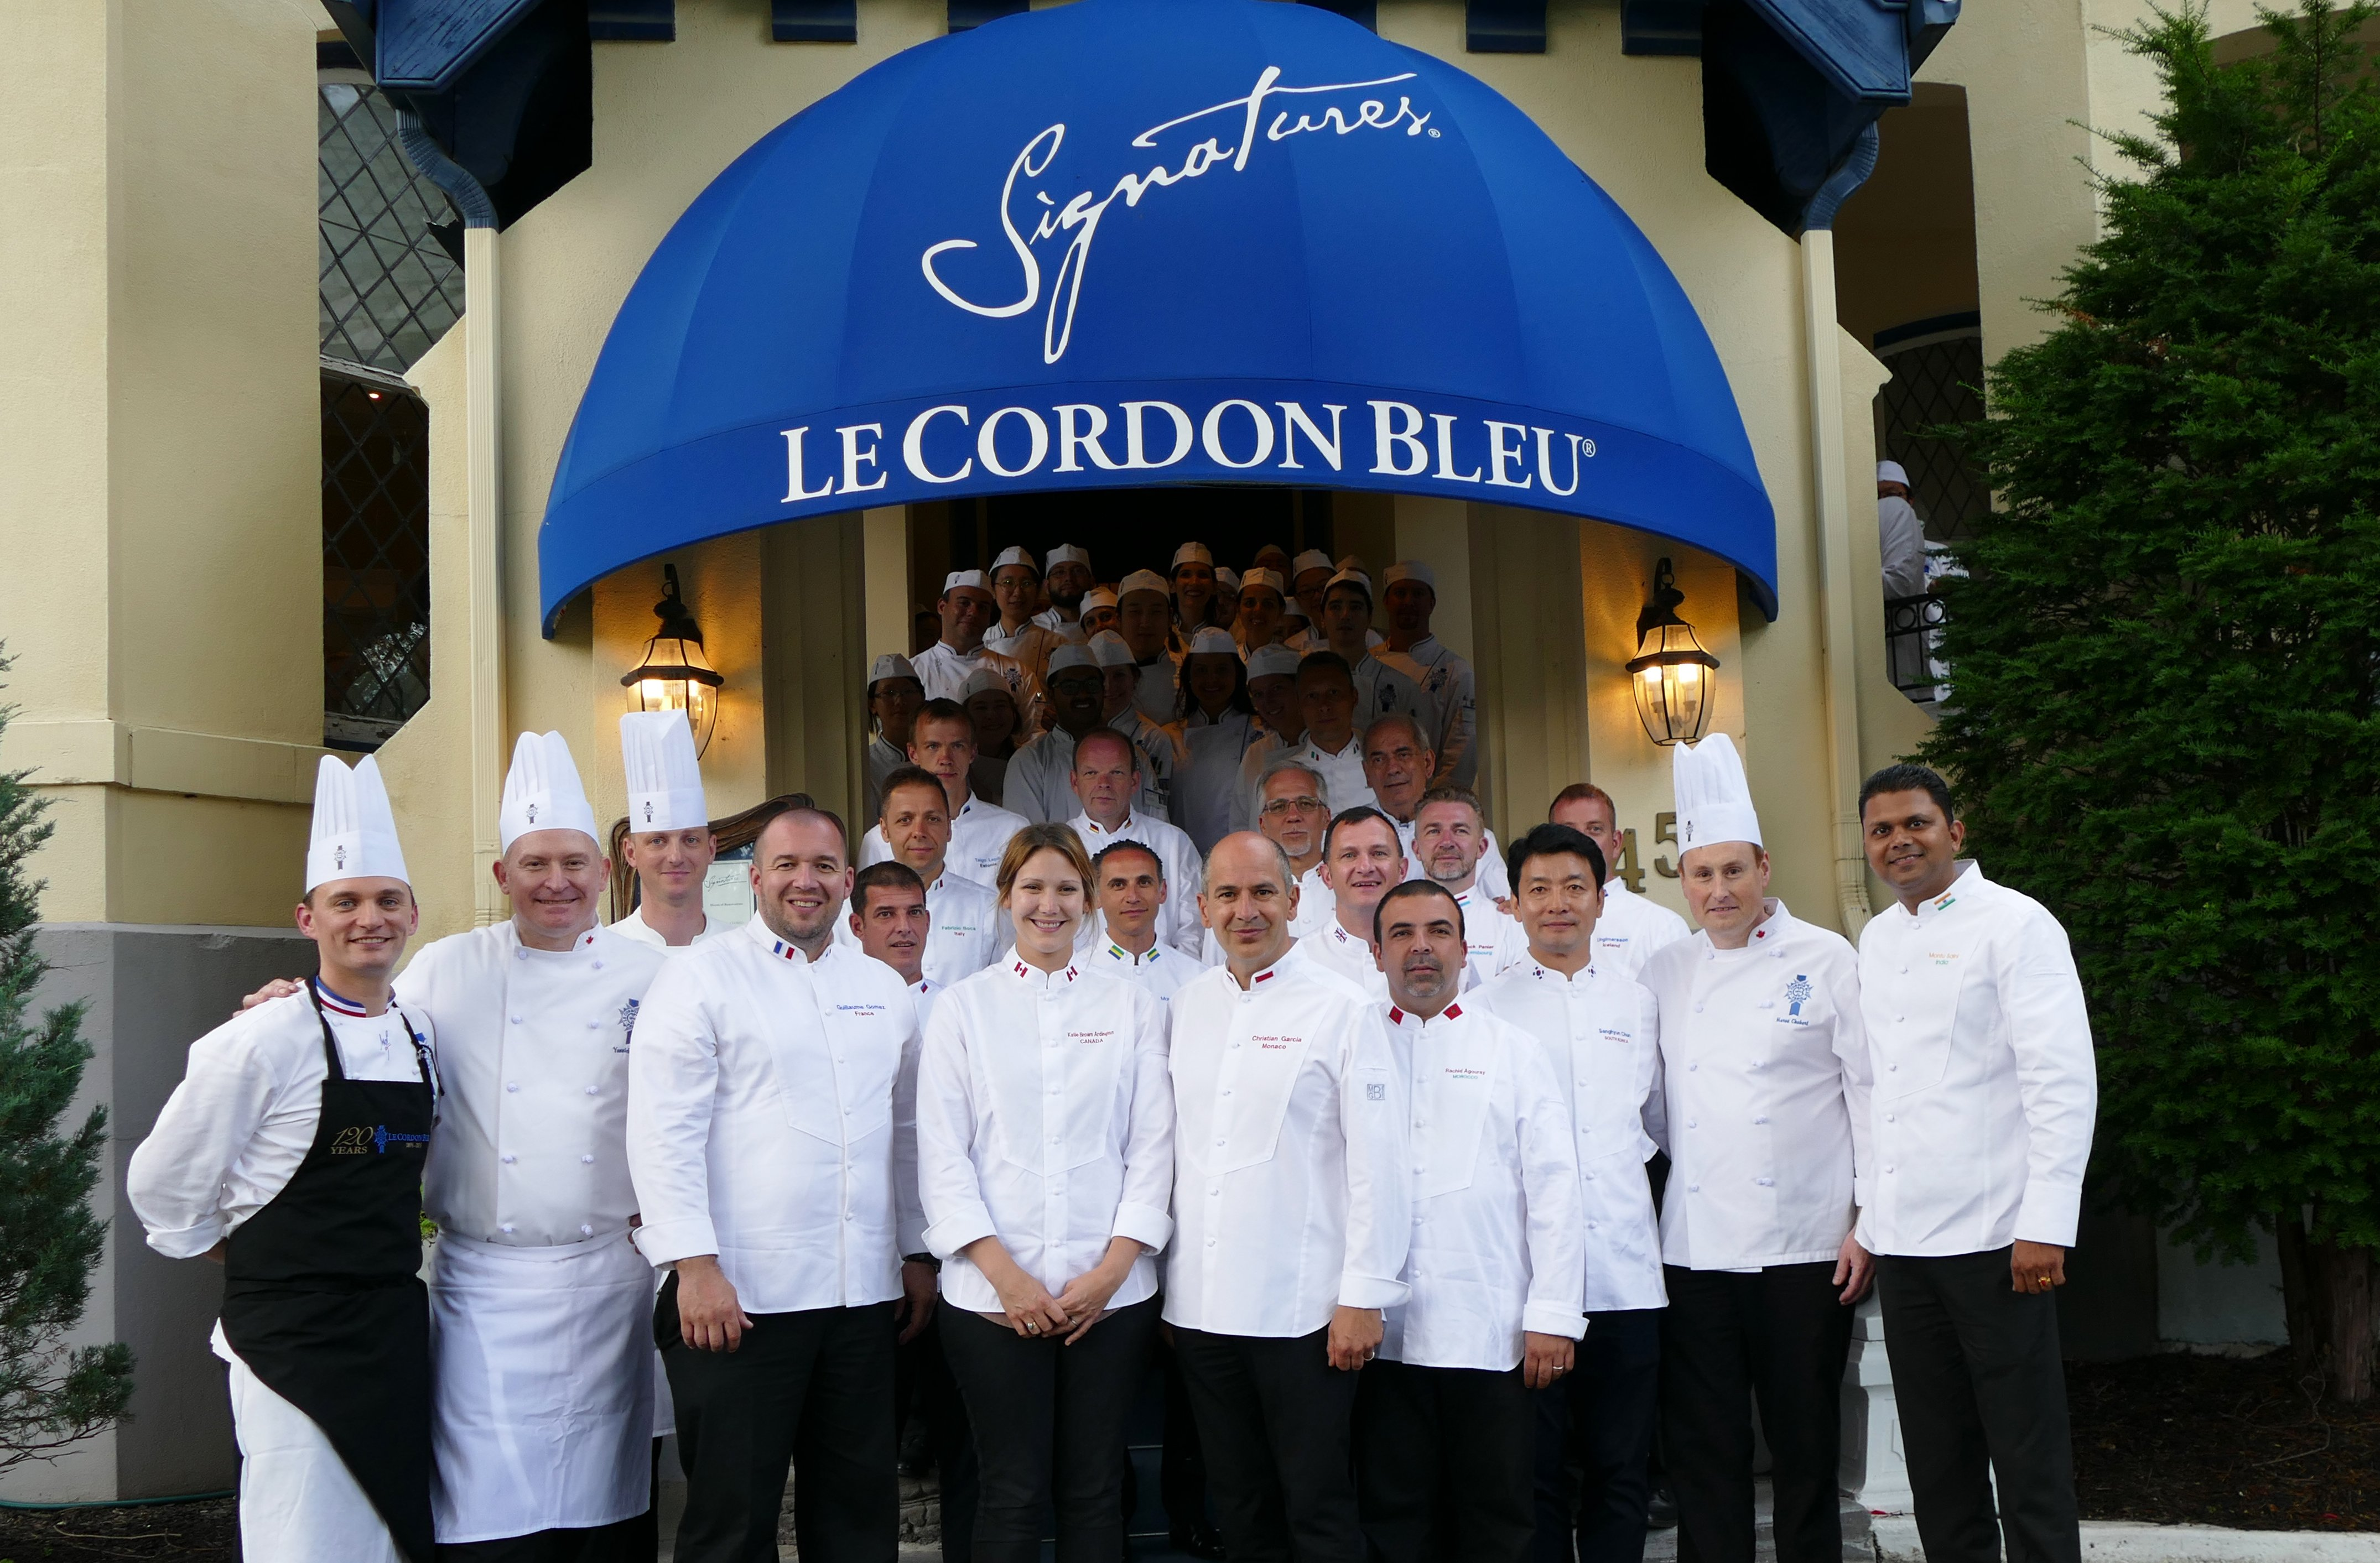 The Club des, Chefs des Chefs